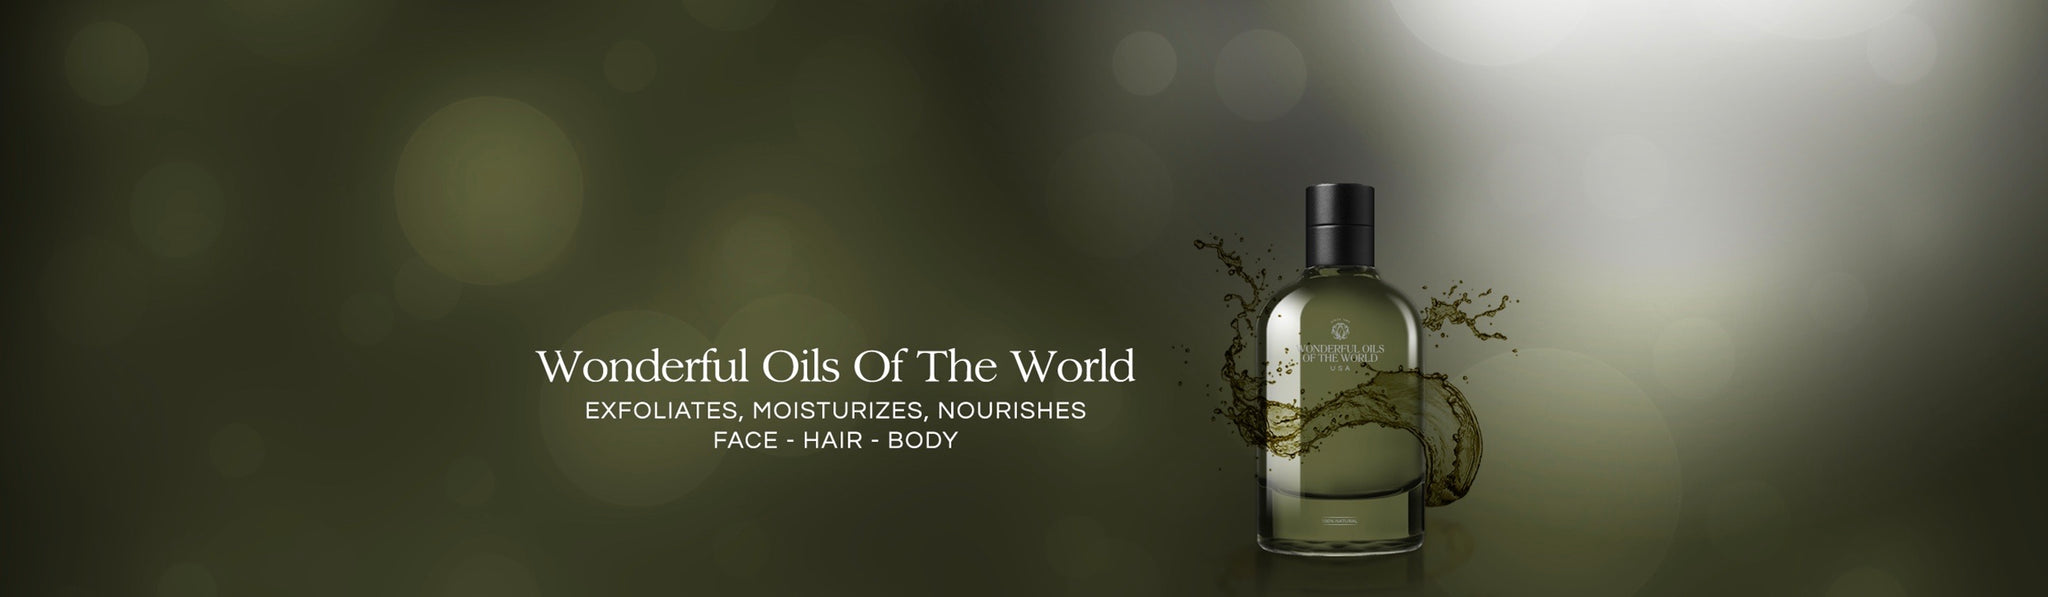 WONDERFUL OILS OF THE WORLD